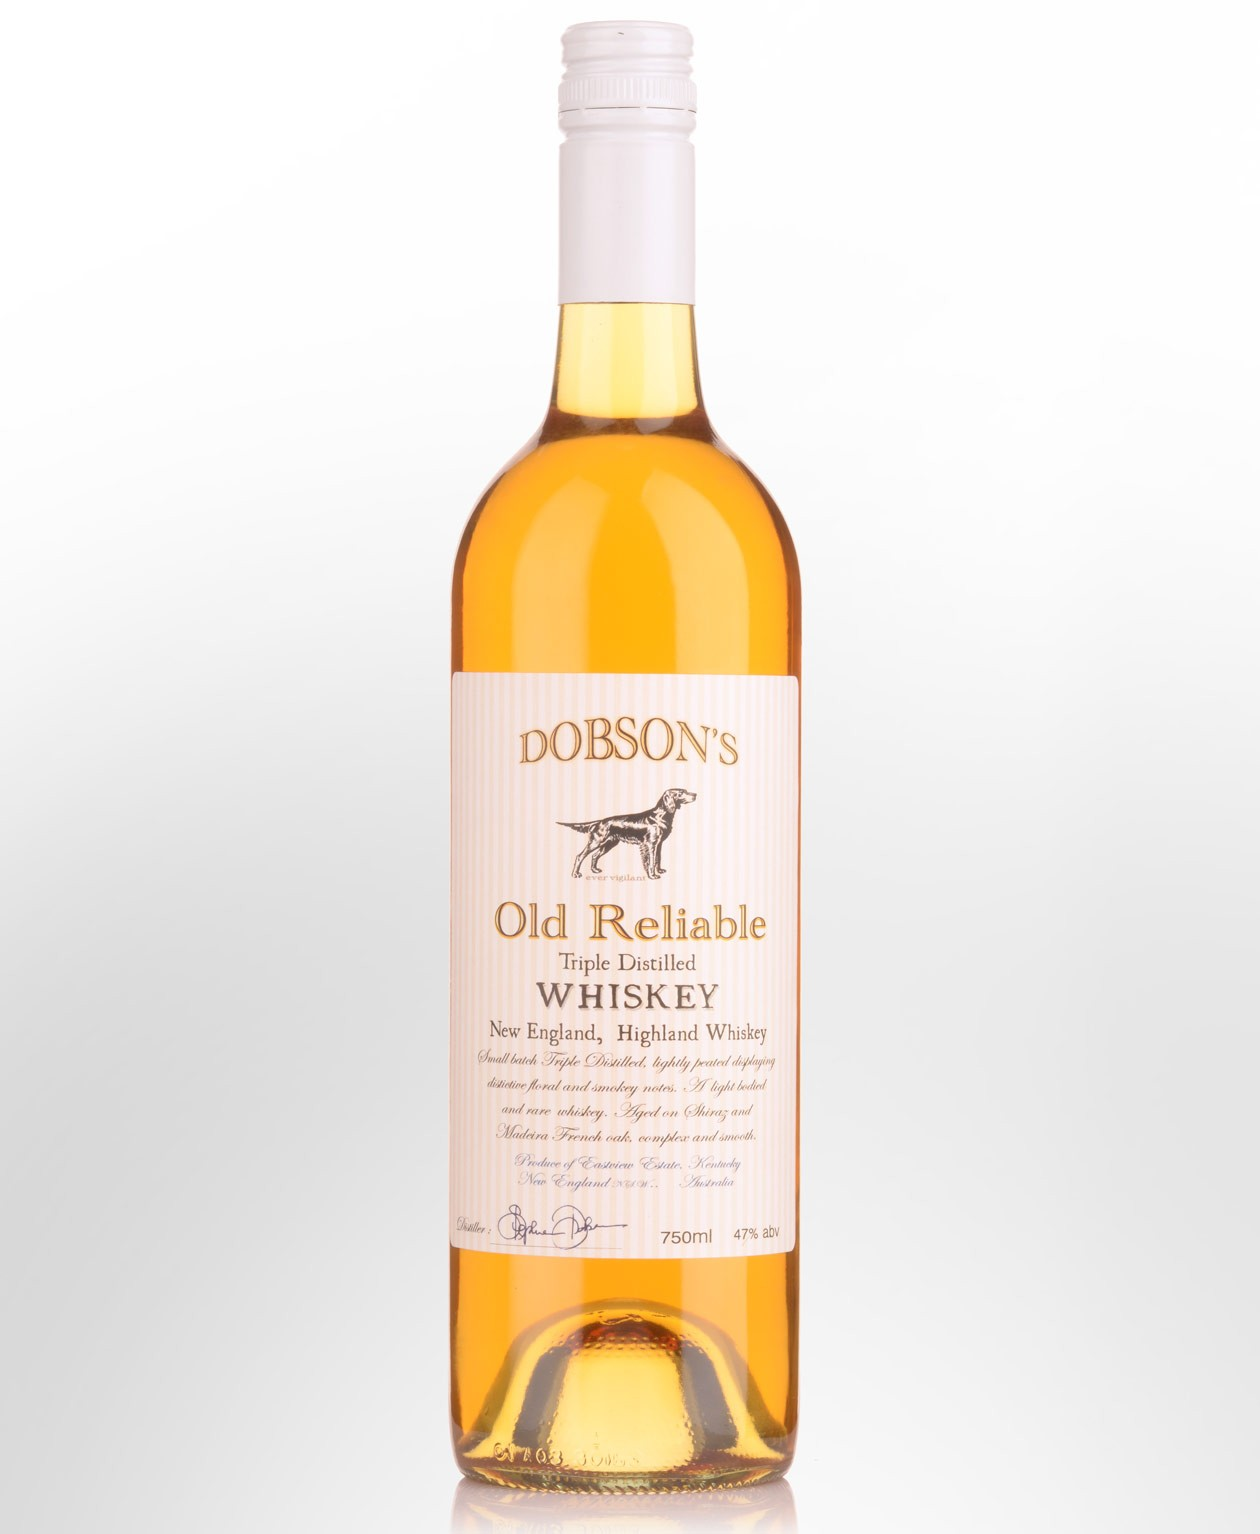 dobsons-old-reliable-triple-distilled-whisky